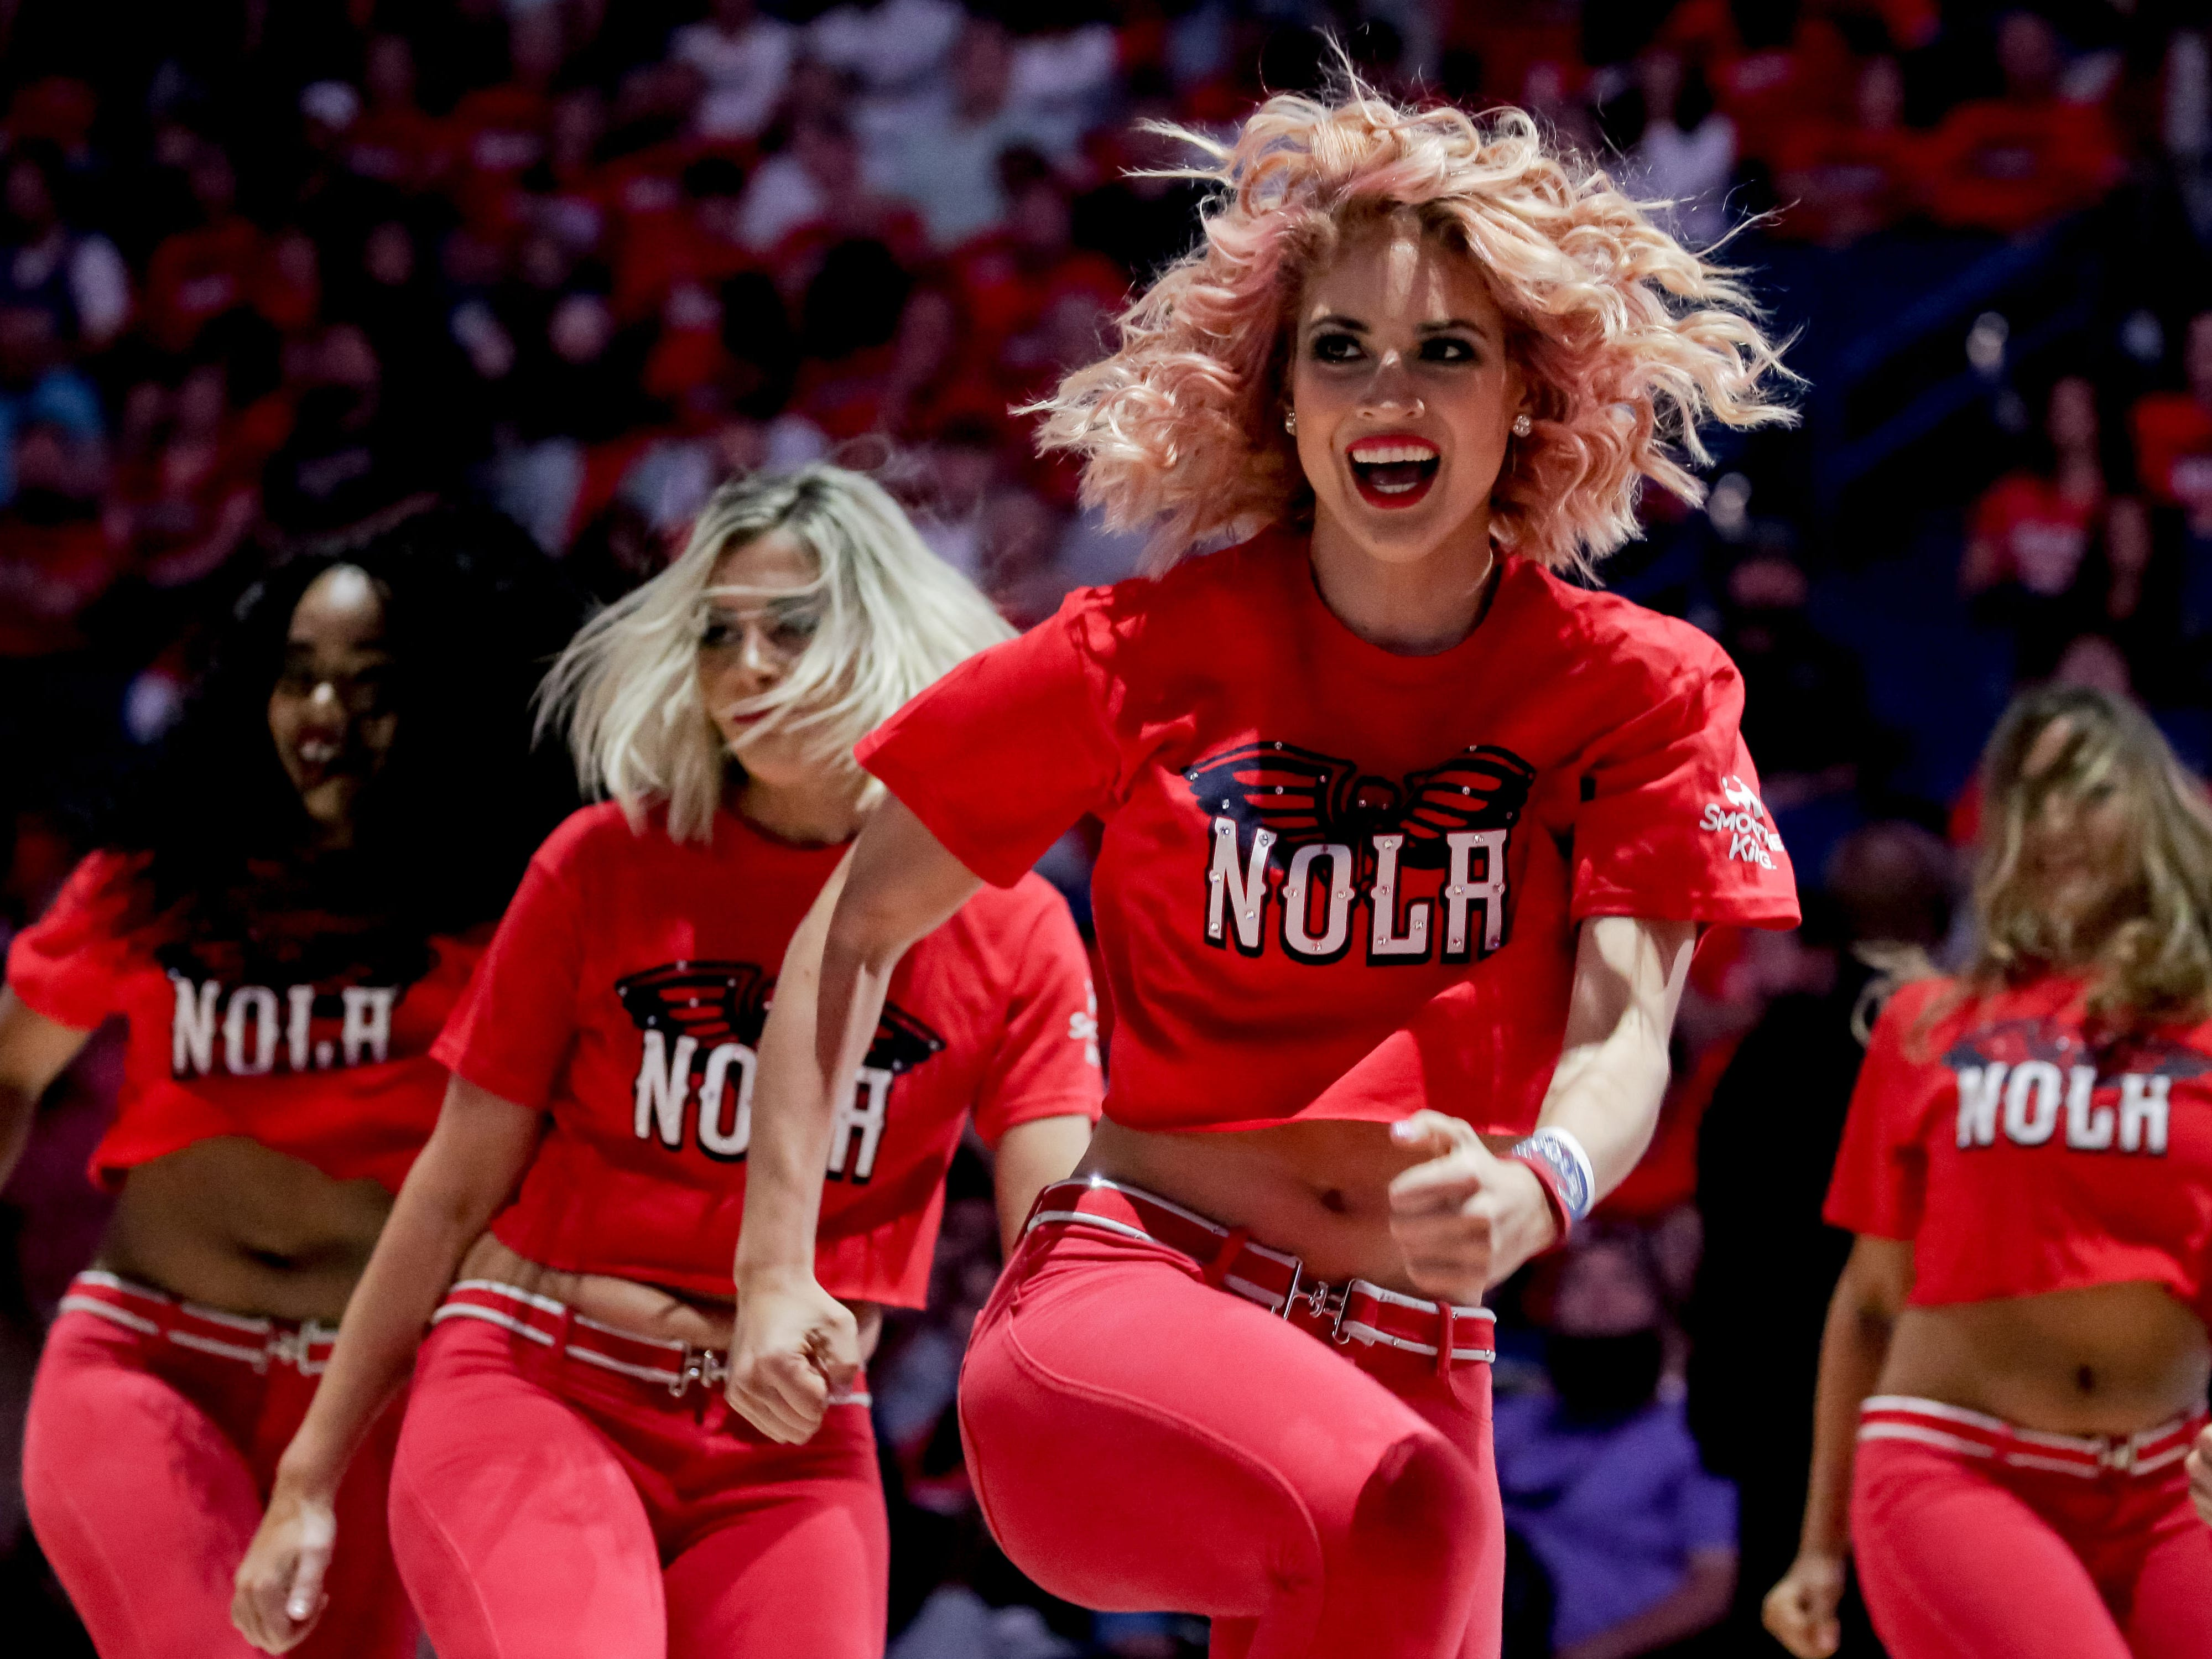 Oct. 19: New Orleans Pelicans dance team performs during the second quarter against the Sacramento Kings at the Smoothie King Center.